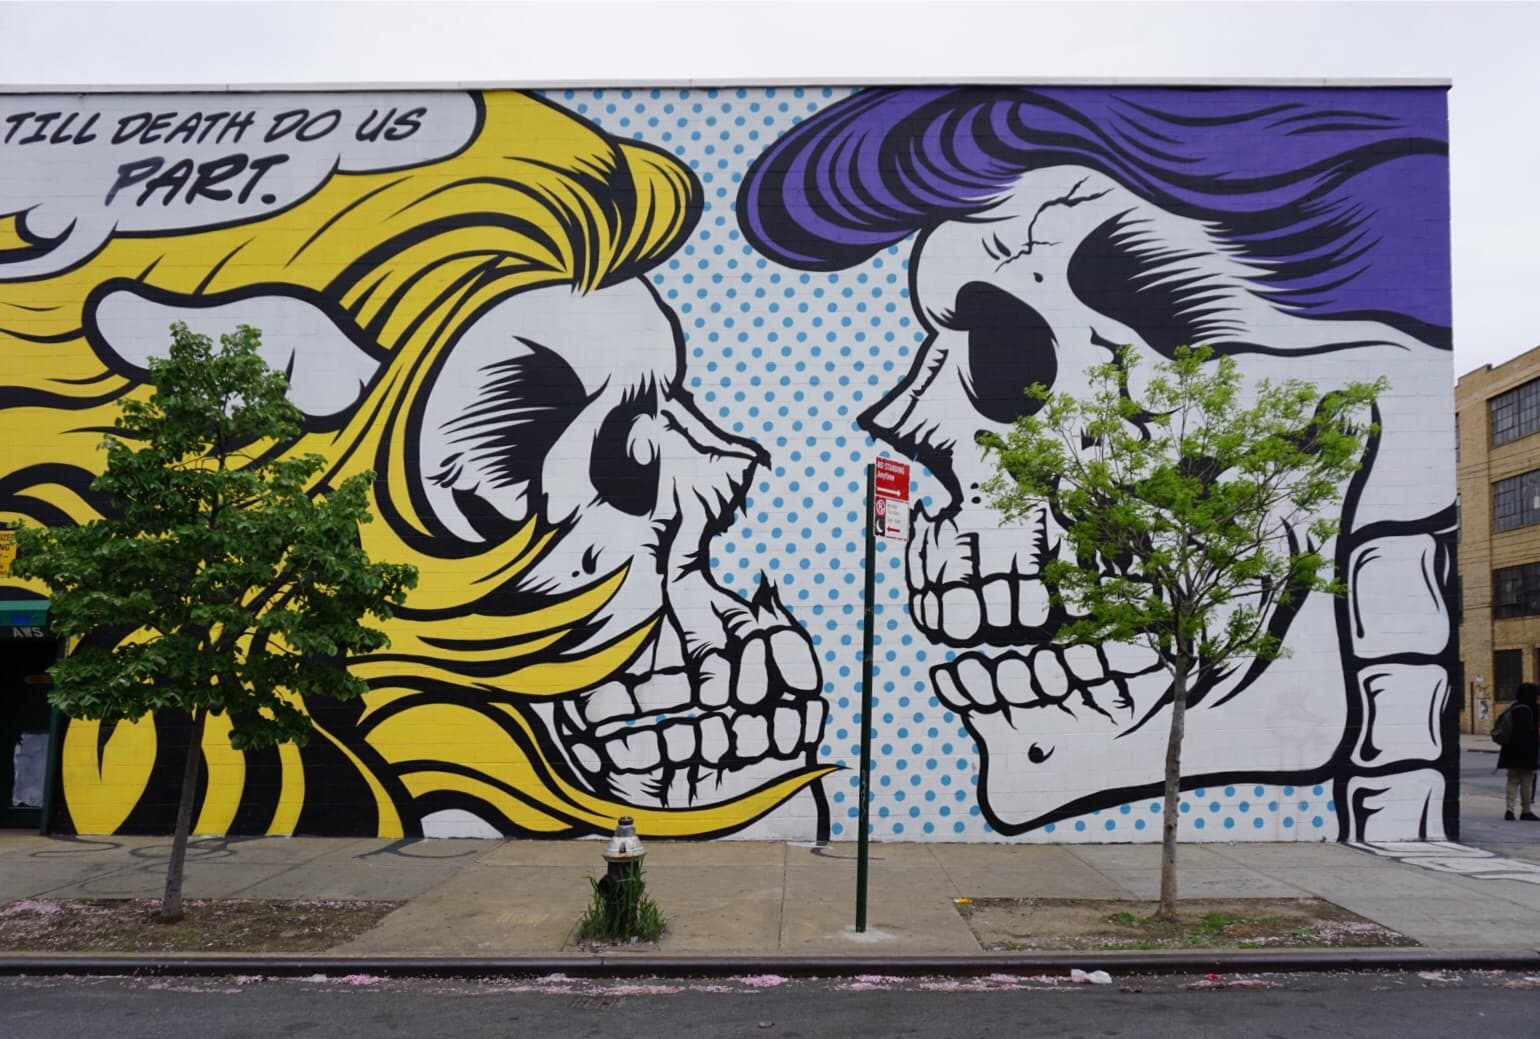 brooklyn graffiti and street art tour two traveling texans the style is very pop art but it has the edgy street vibe